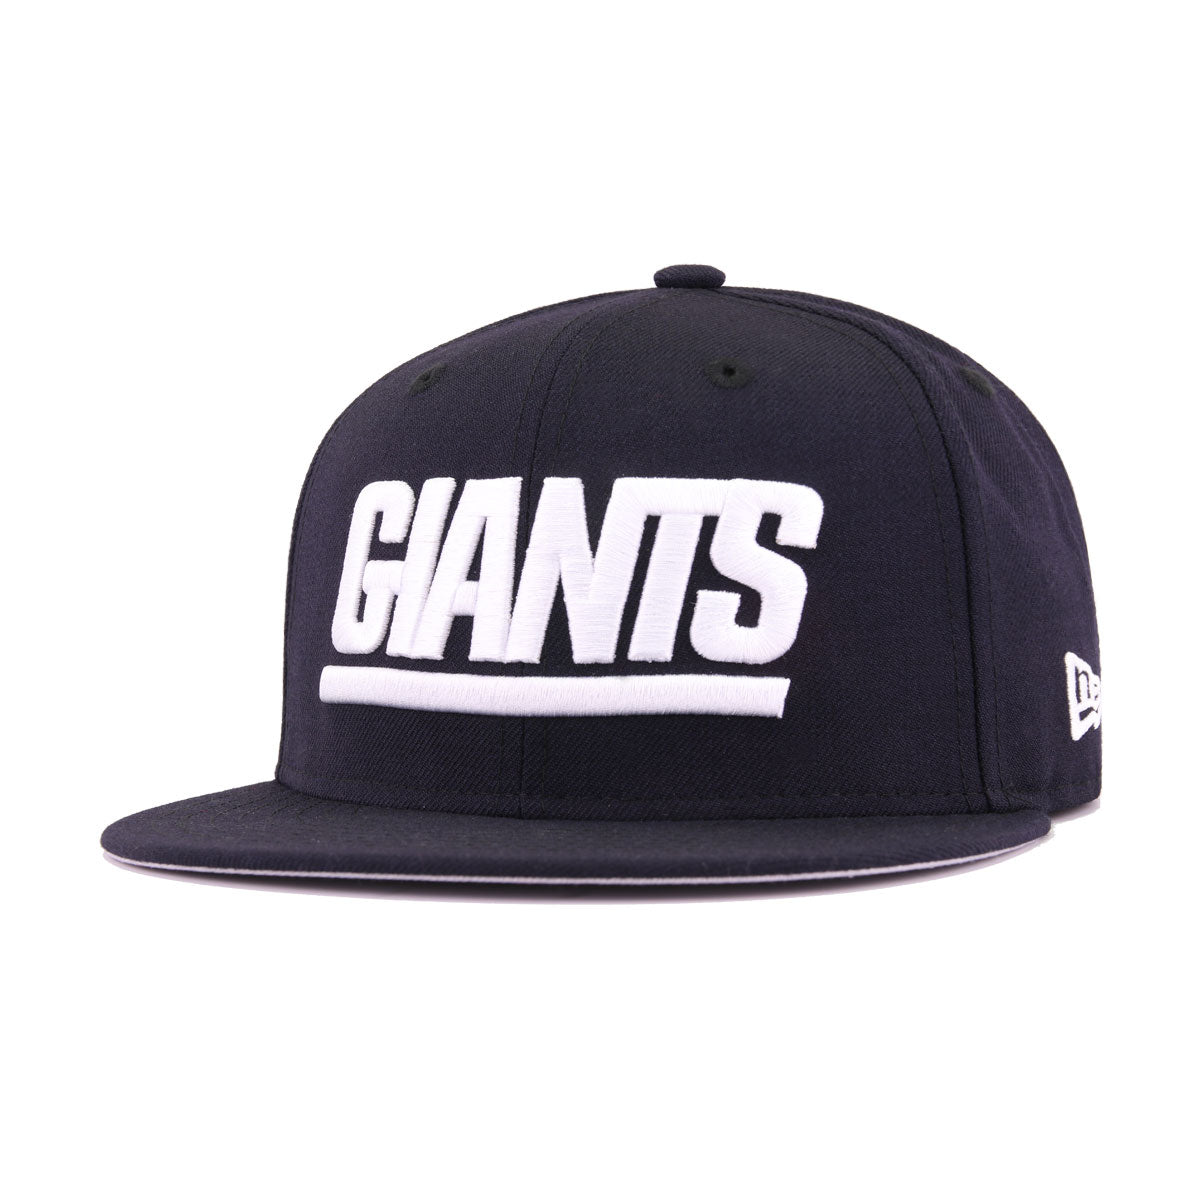 New York Giants Navy Wordmark New Era 9Fifty Snapback